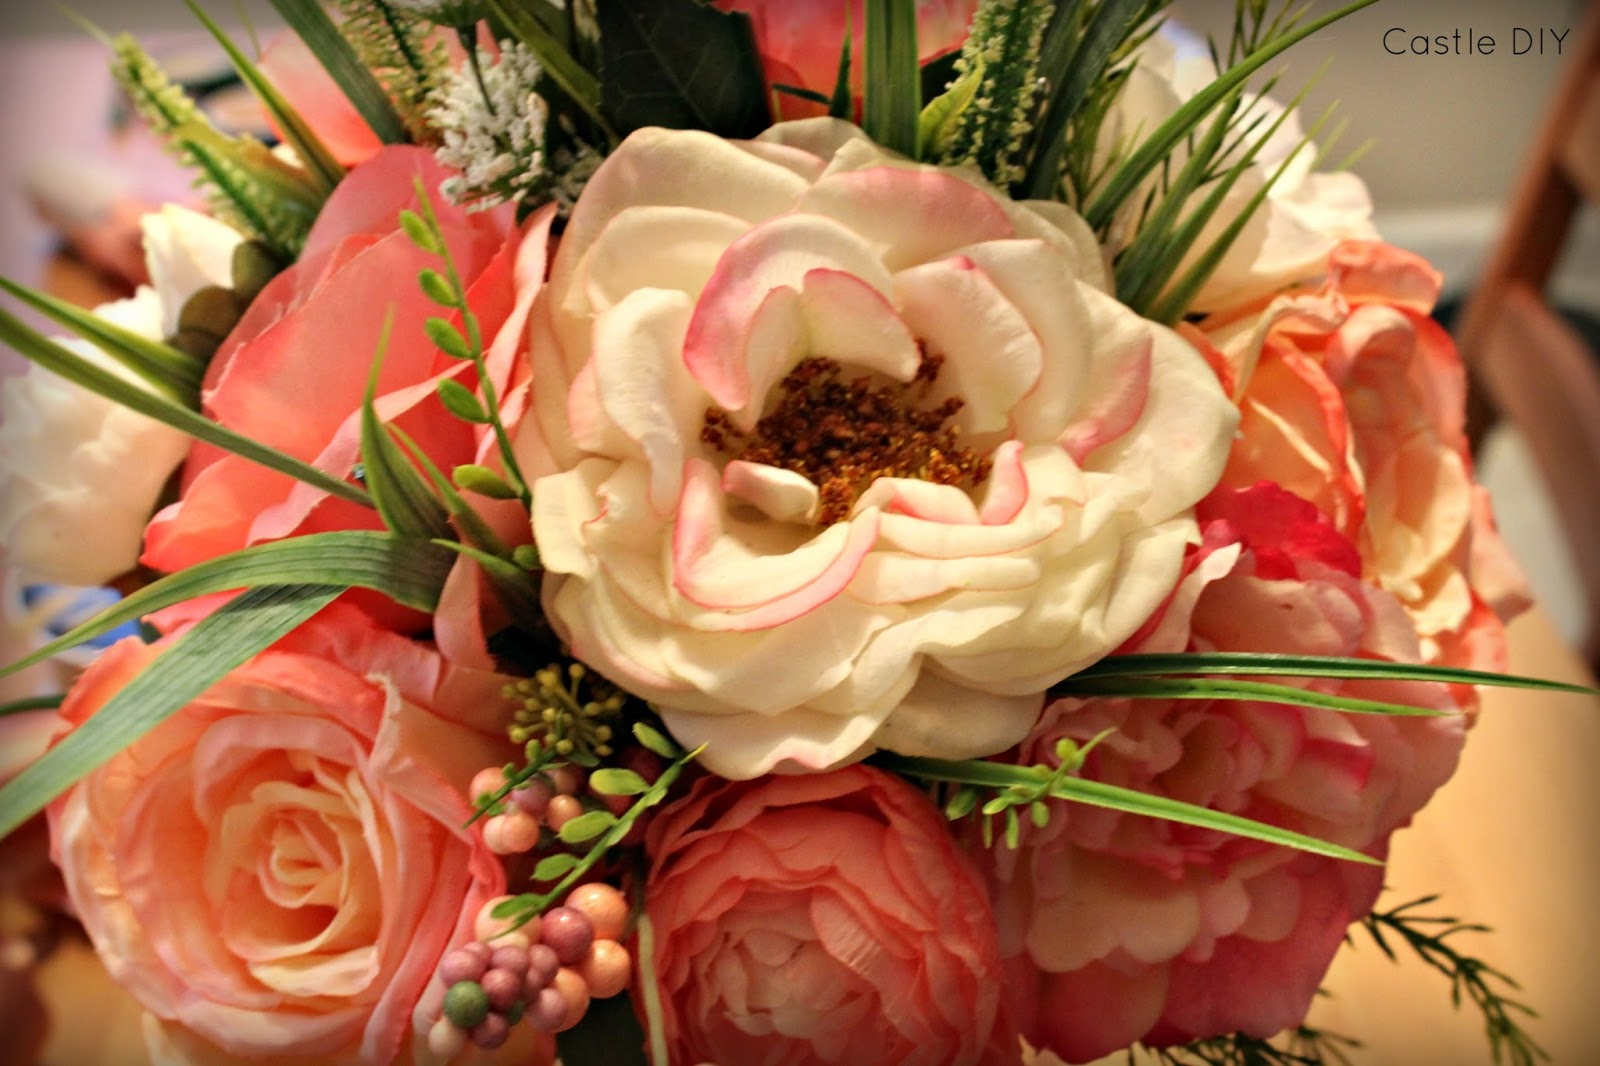 Castle diy faux flower bouquet for the cheap lazy bride if youre thinking about doing faux flowers for your wedding do it itll save you money time aggravation and youll have them forever izmirmasajfo